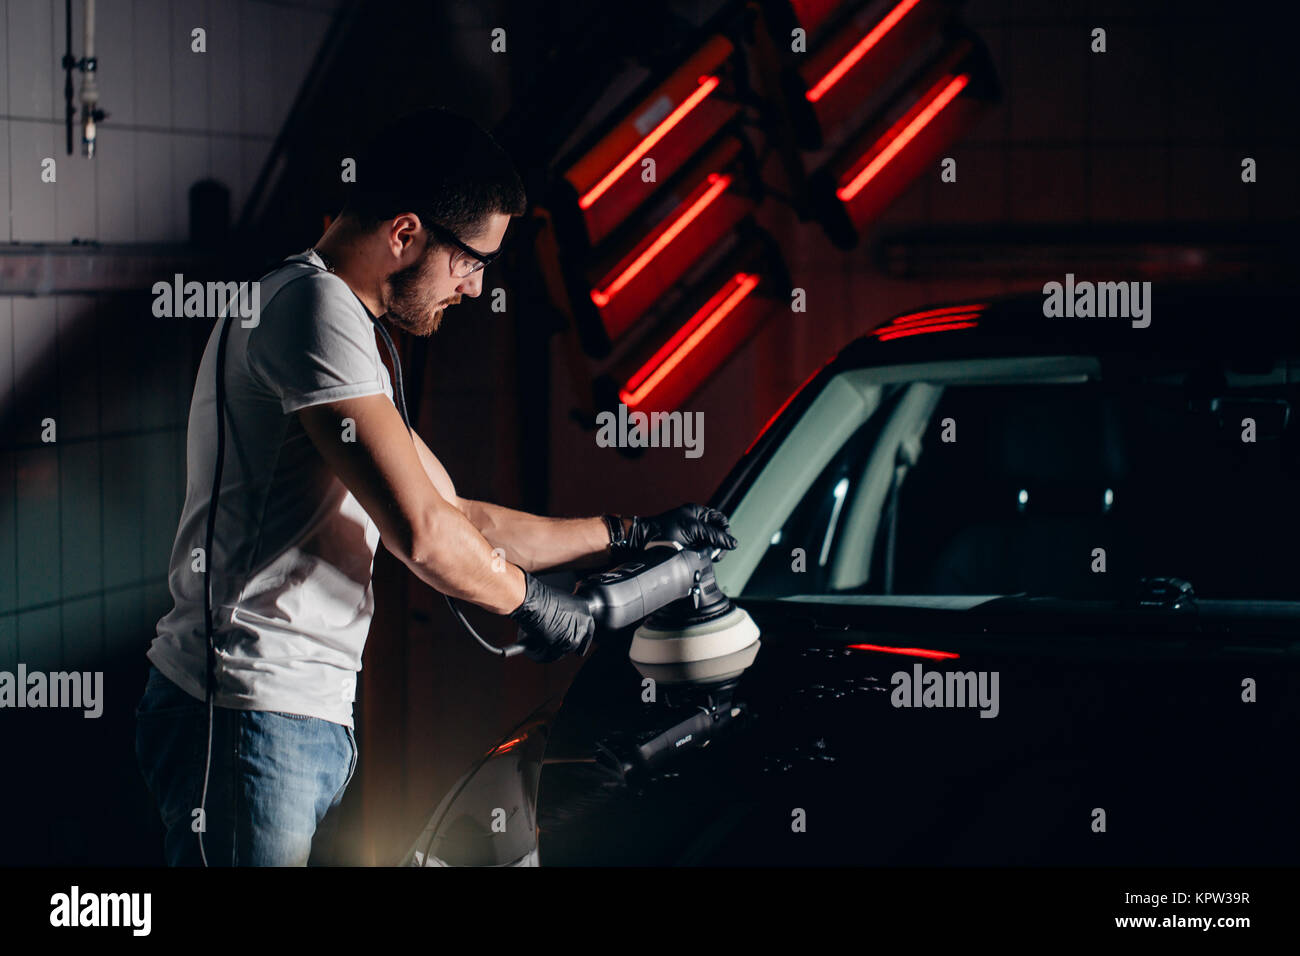 Car detailing - man with orbital polisher in auto repair shop. Selective focus. Stock Photo